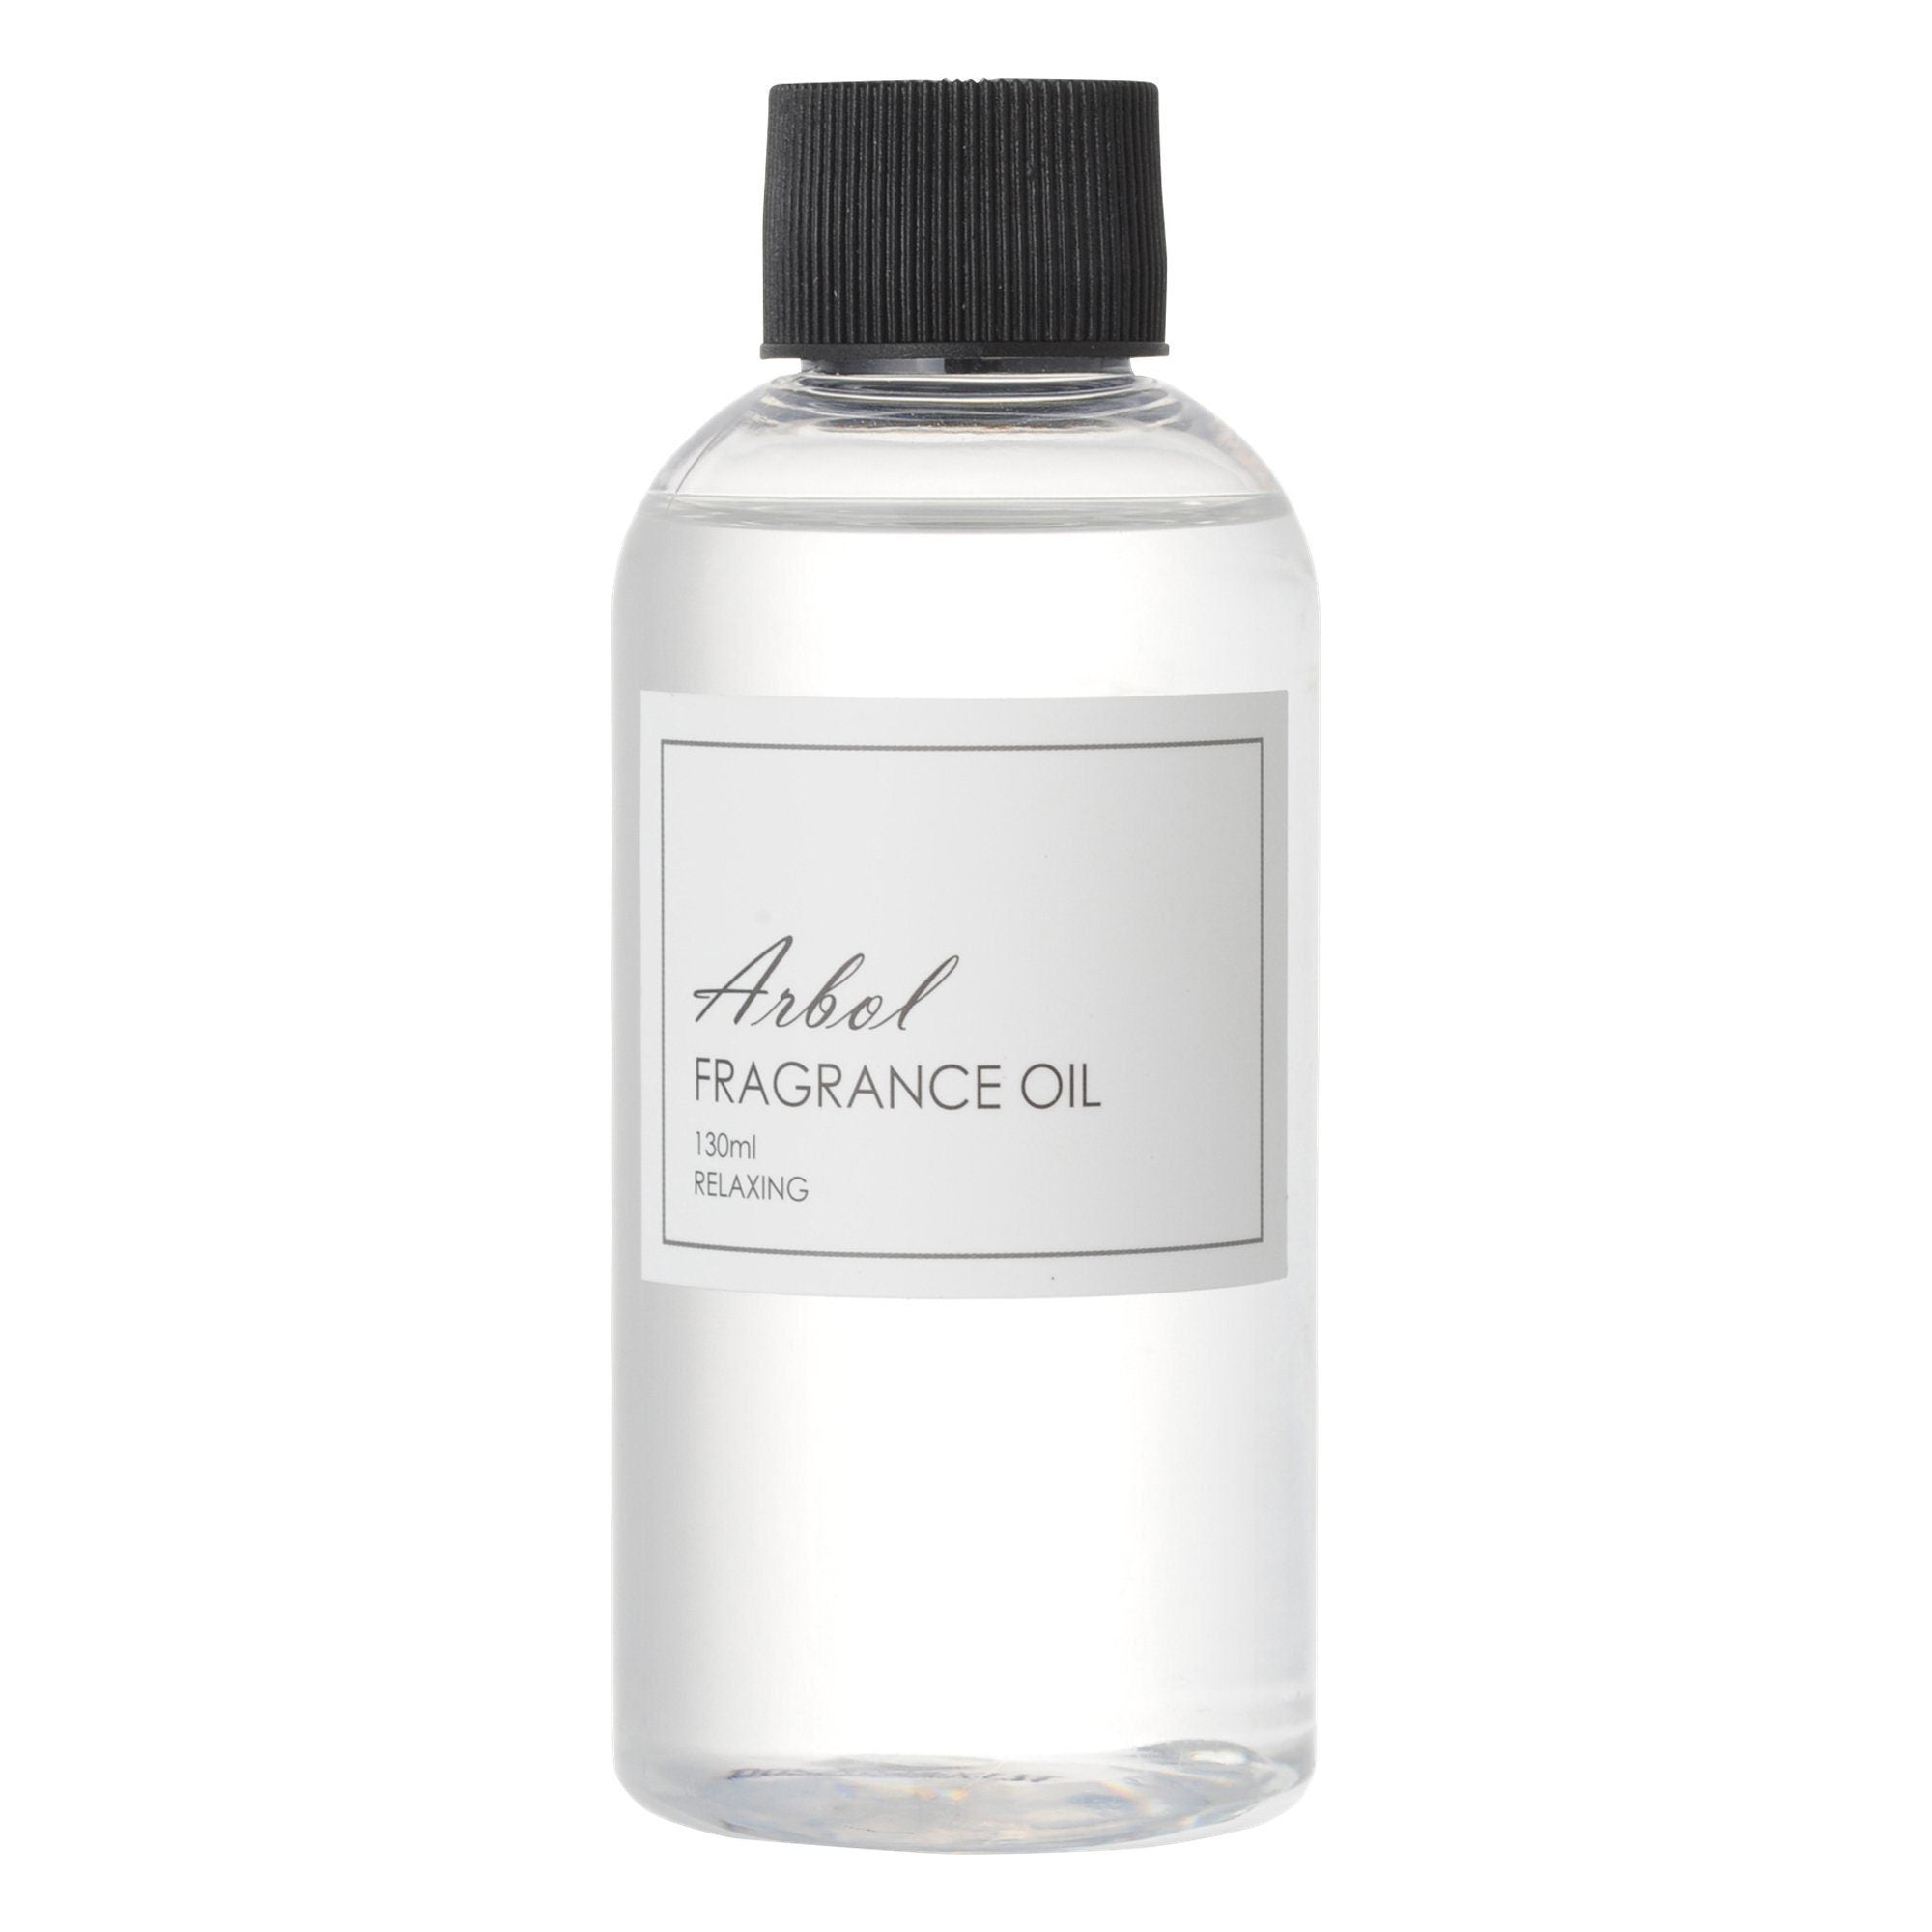 ARBOL Fragrance Oil Black - weare-francfranc